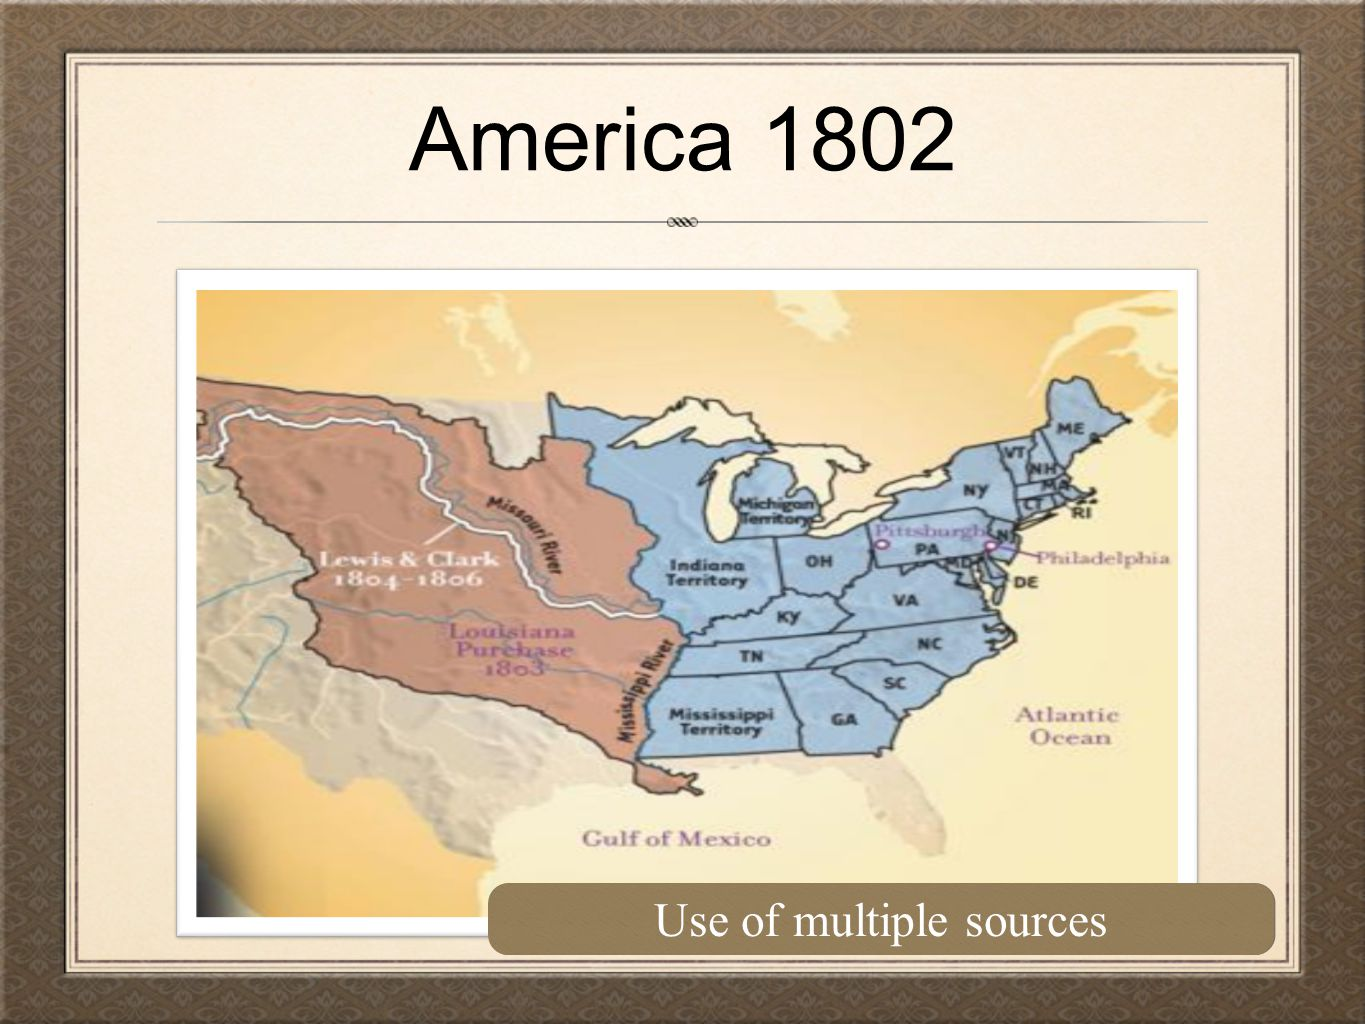 America 1802 Use of multiple sources